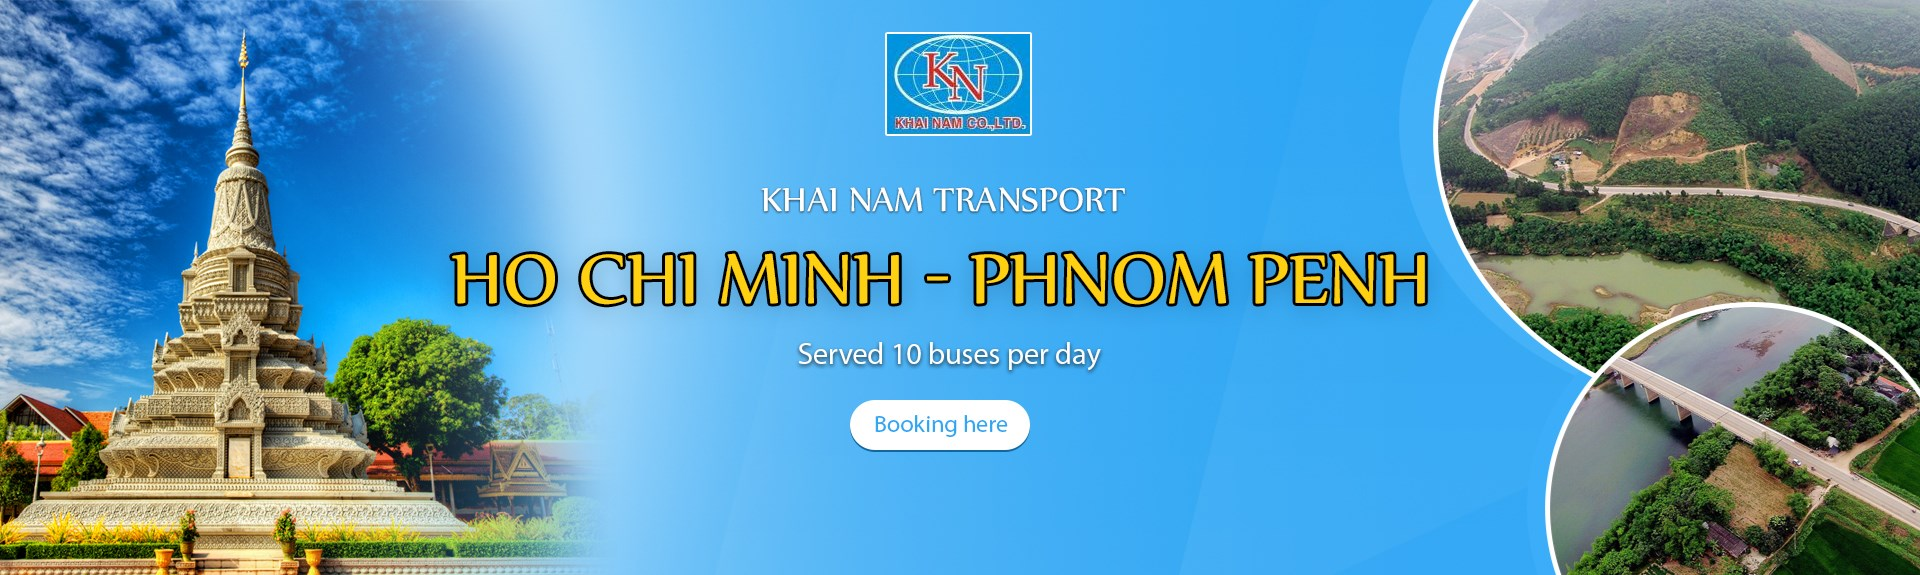 en-khainamtransport